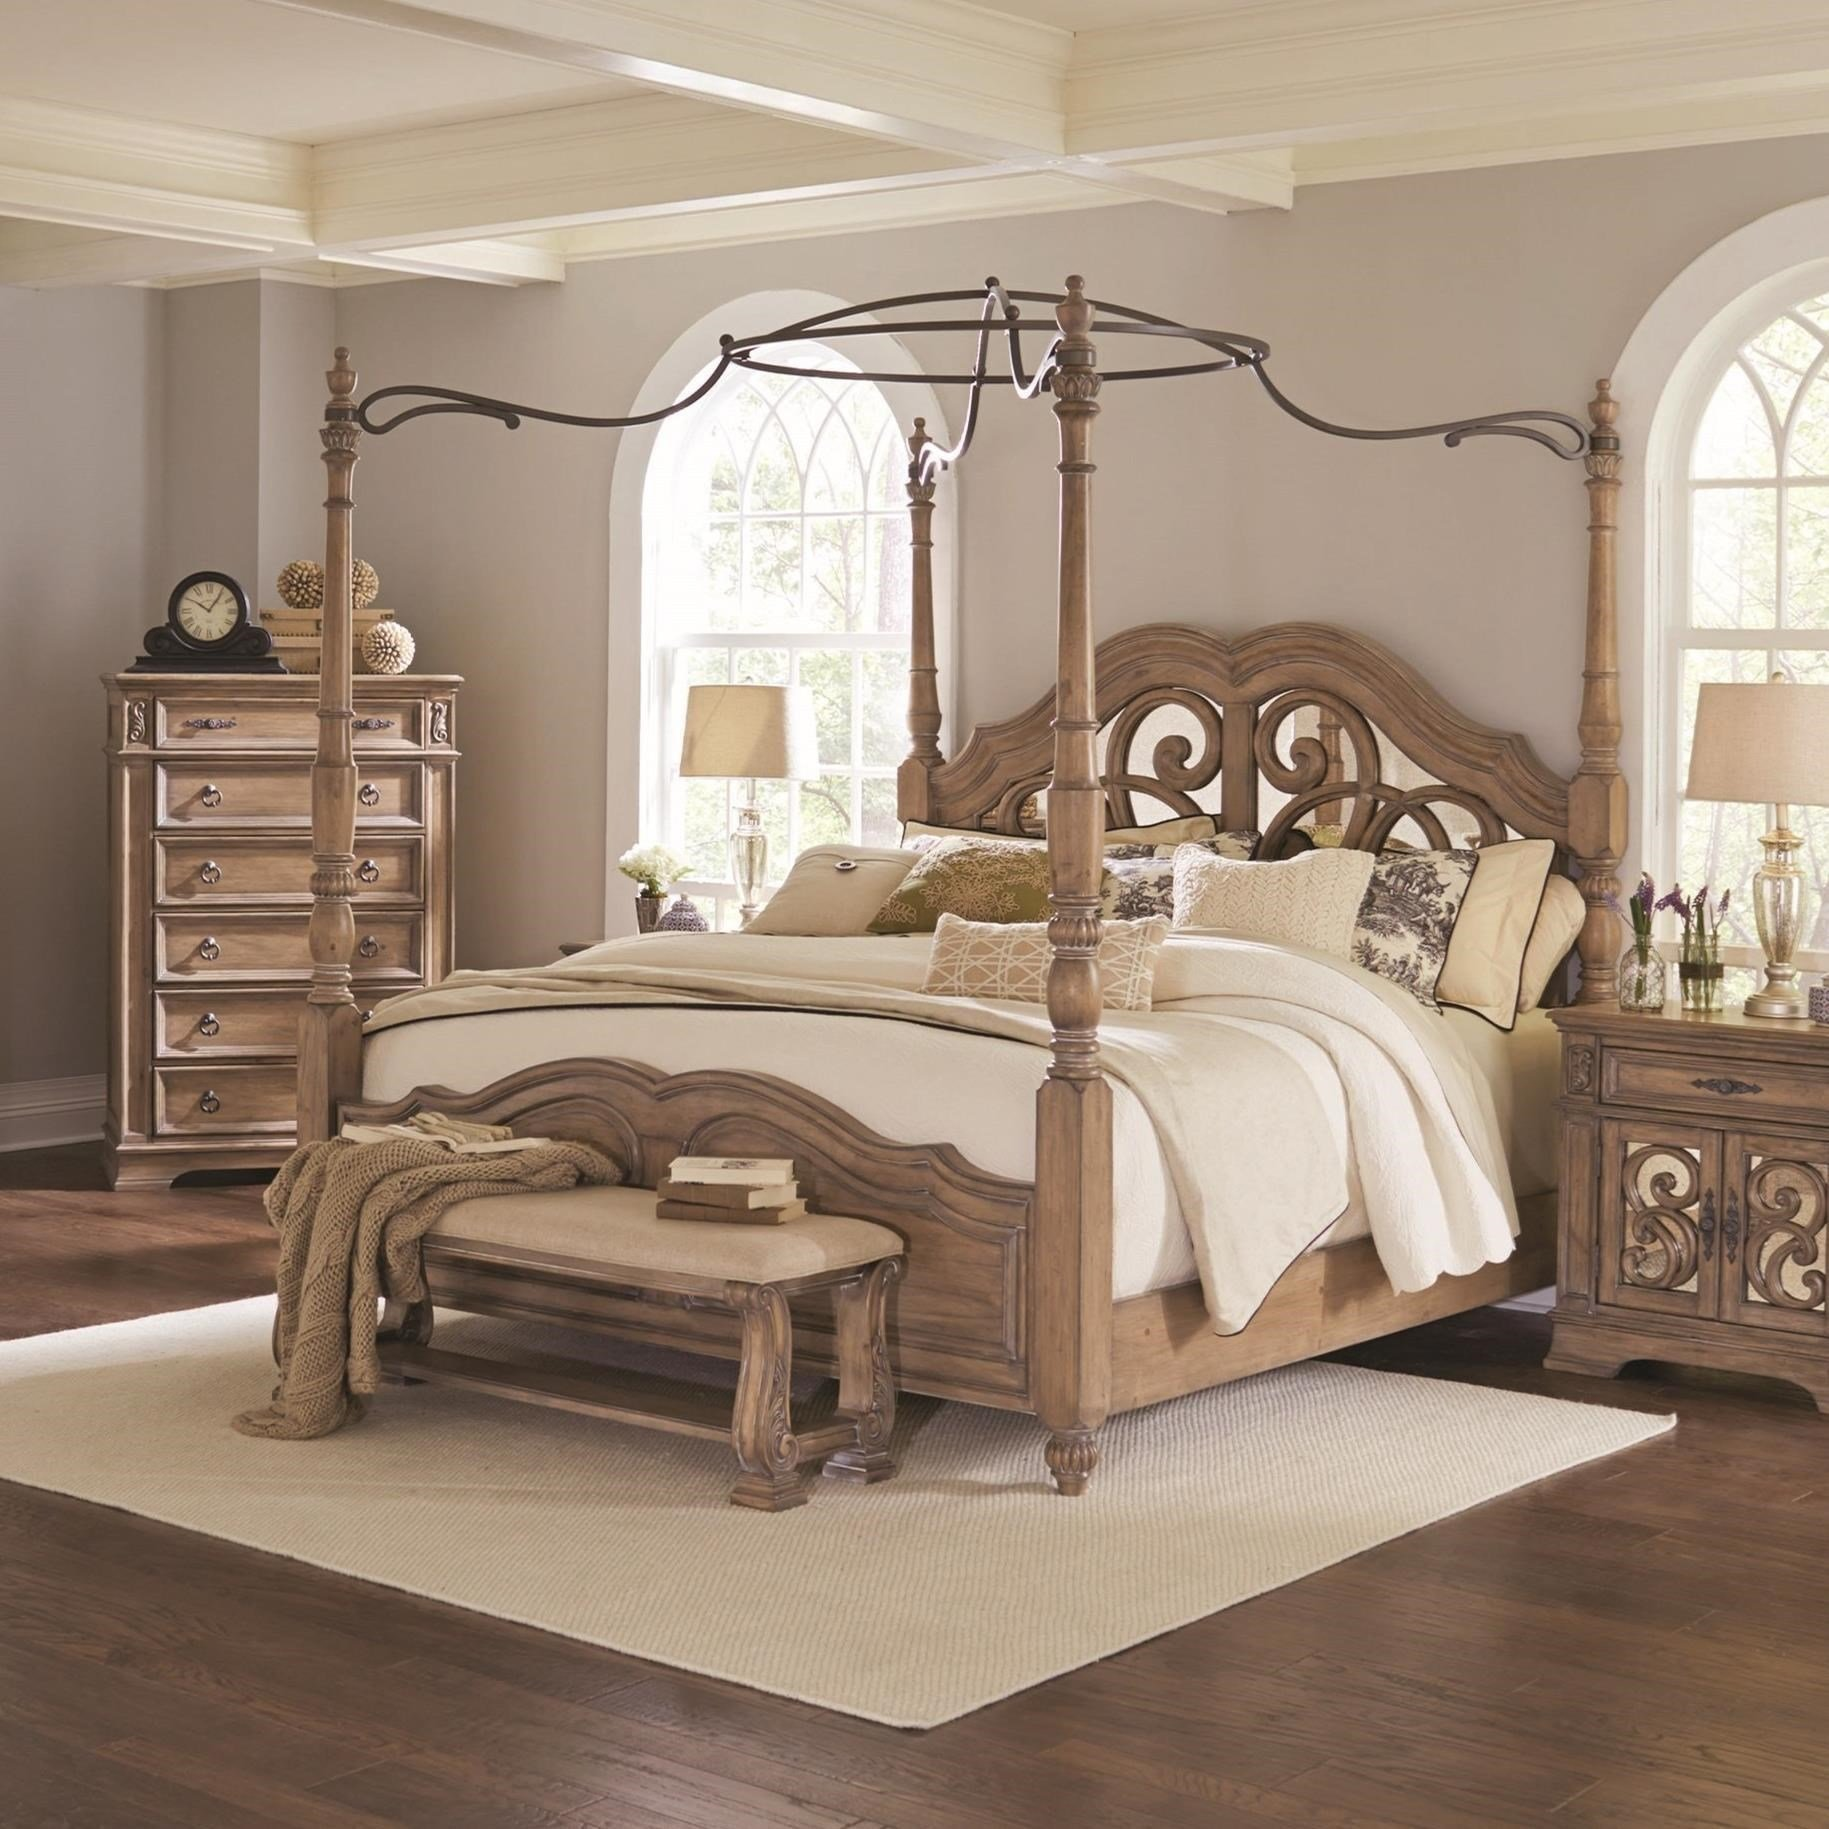 Best Coaster Ilana Queen Canopy Bed With Mirror Back Headboard Value City Furniture Canopy Beds With Pictures